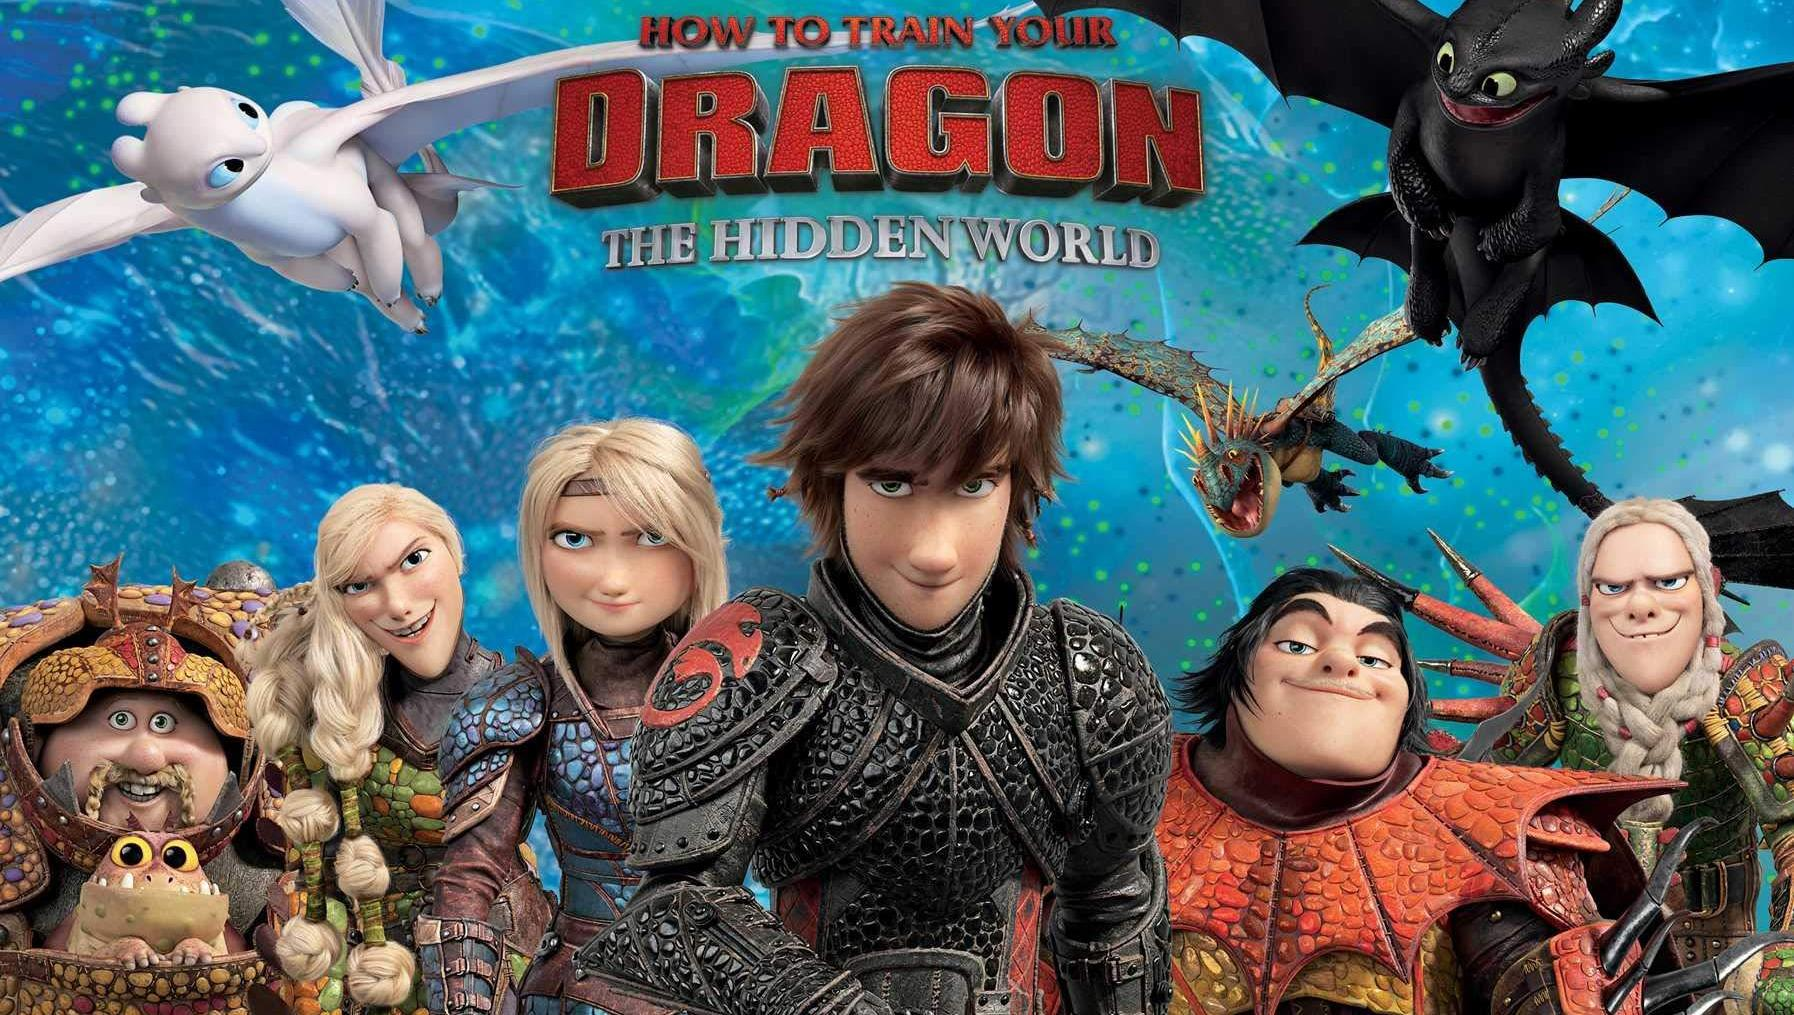 Xem phim How to Train Your Dragon 3: The Hidden World (2019) - How to Train Your Dragon 3 Vietsub